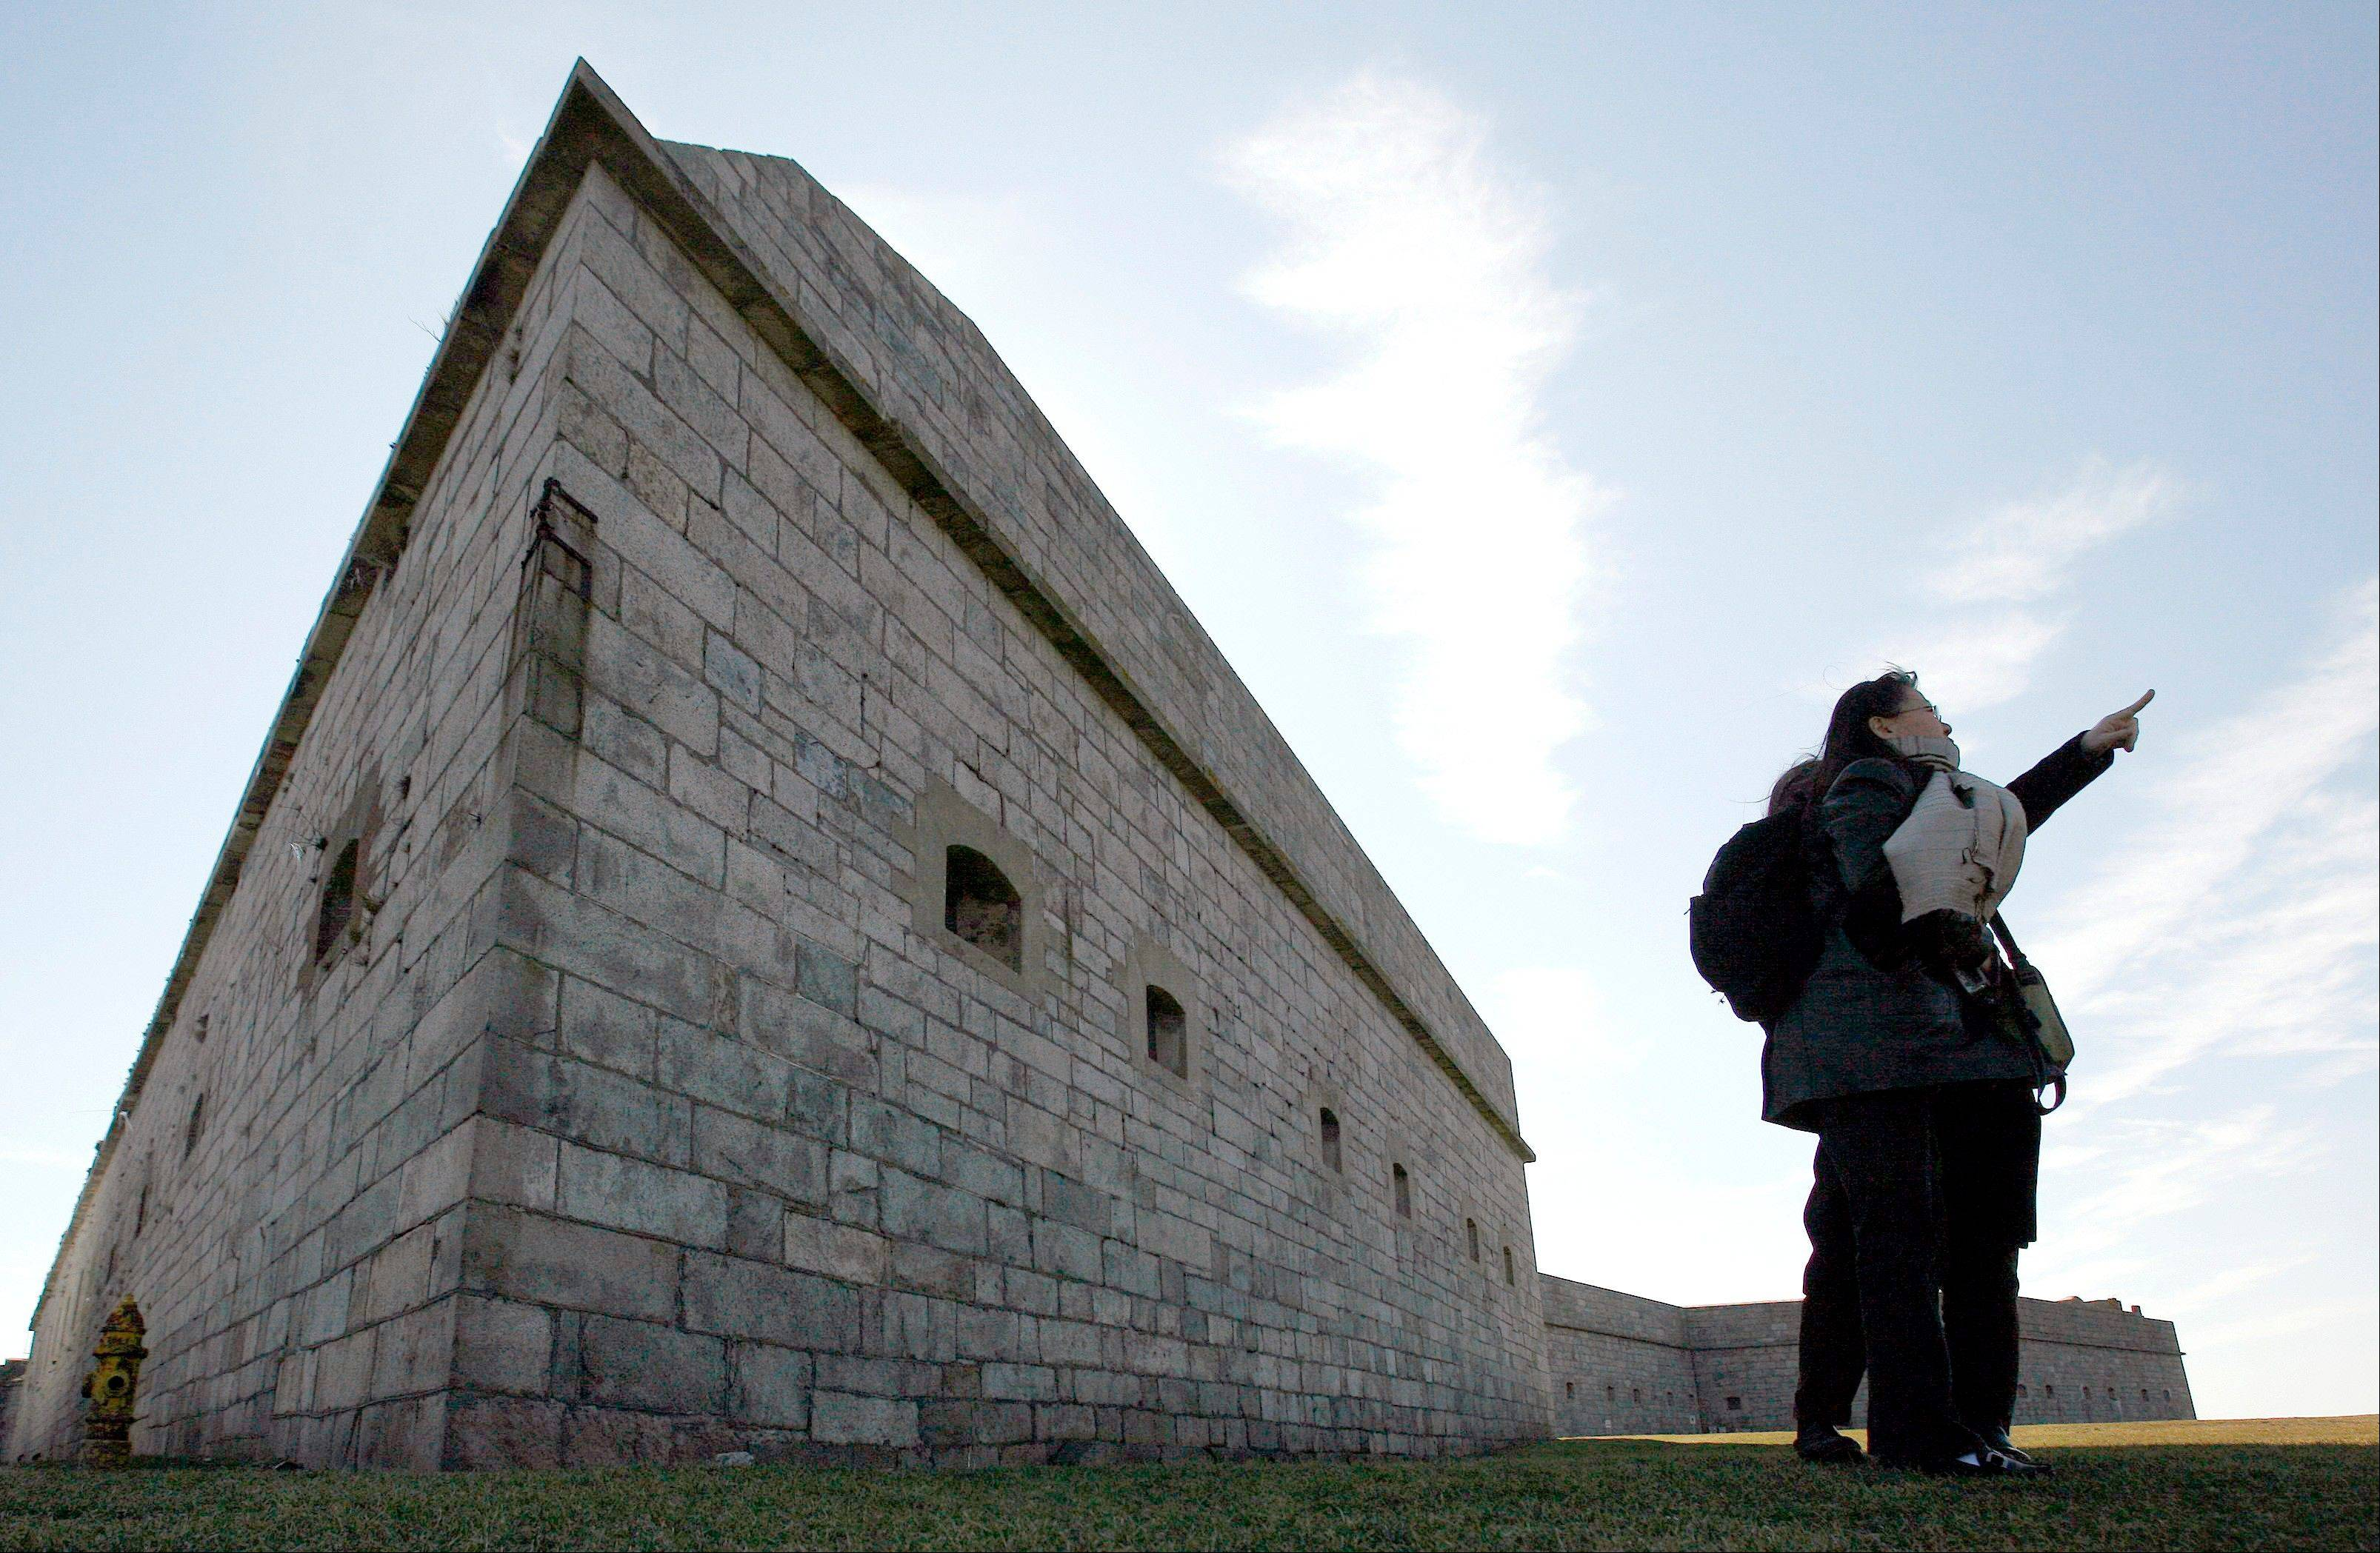 The walls of Fort Adams loom behind visitors at the site in Newport, R.I.